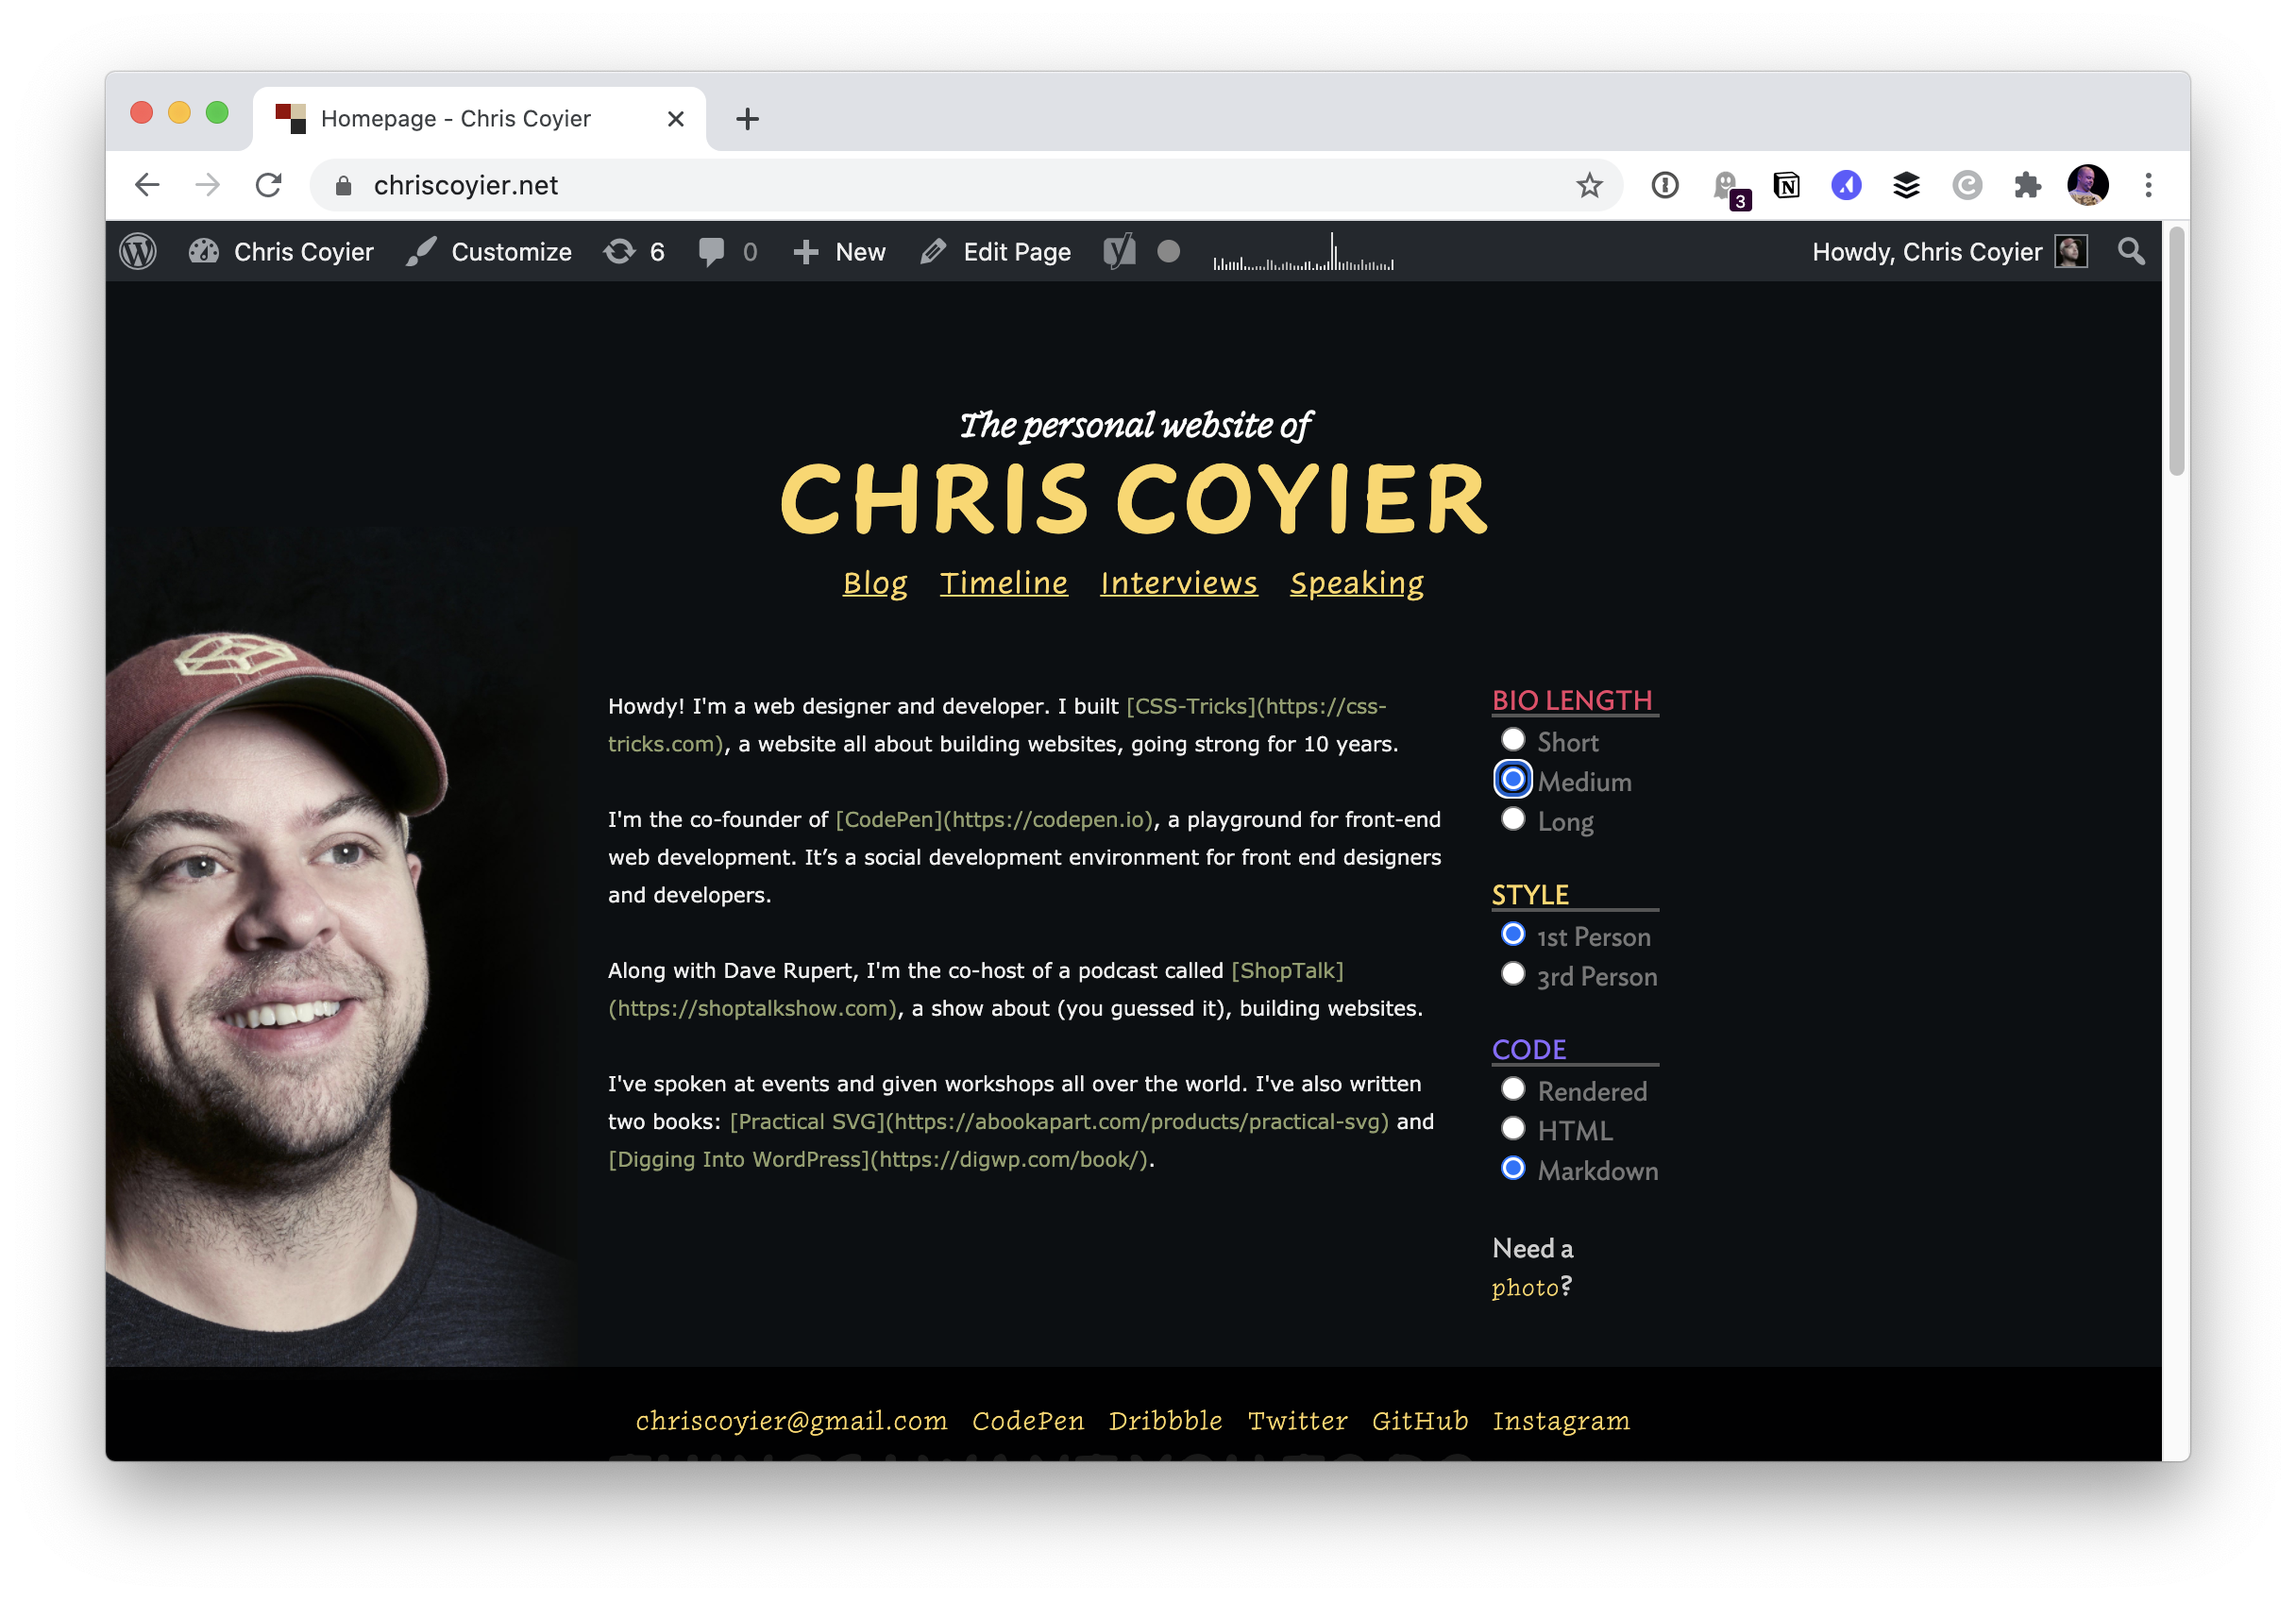 Screenshot of Chris Coyier's personal website homepage. It has a dark background and a large picture of Chris wearing a red CodePen hat next to some text welcoming people to the site.